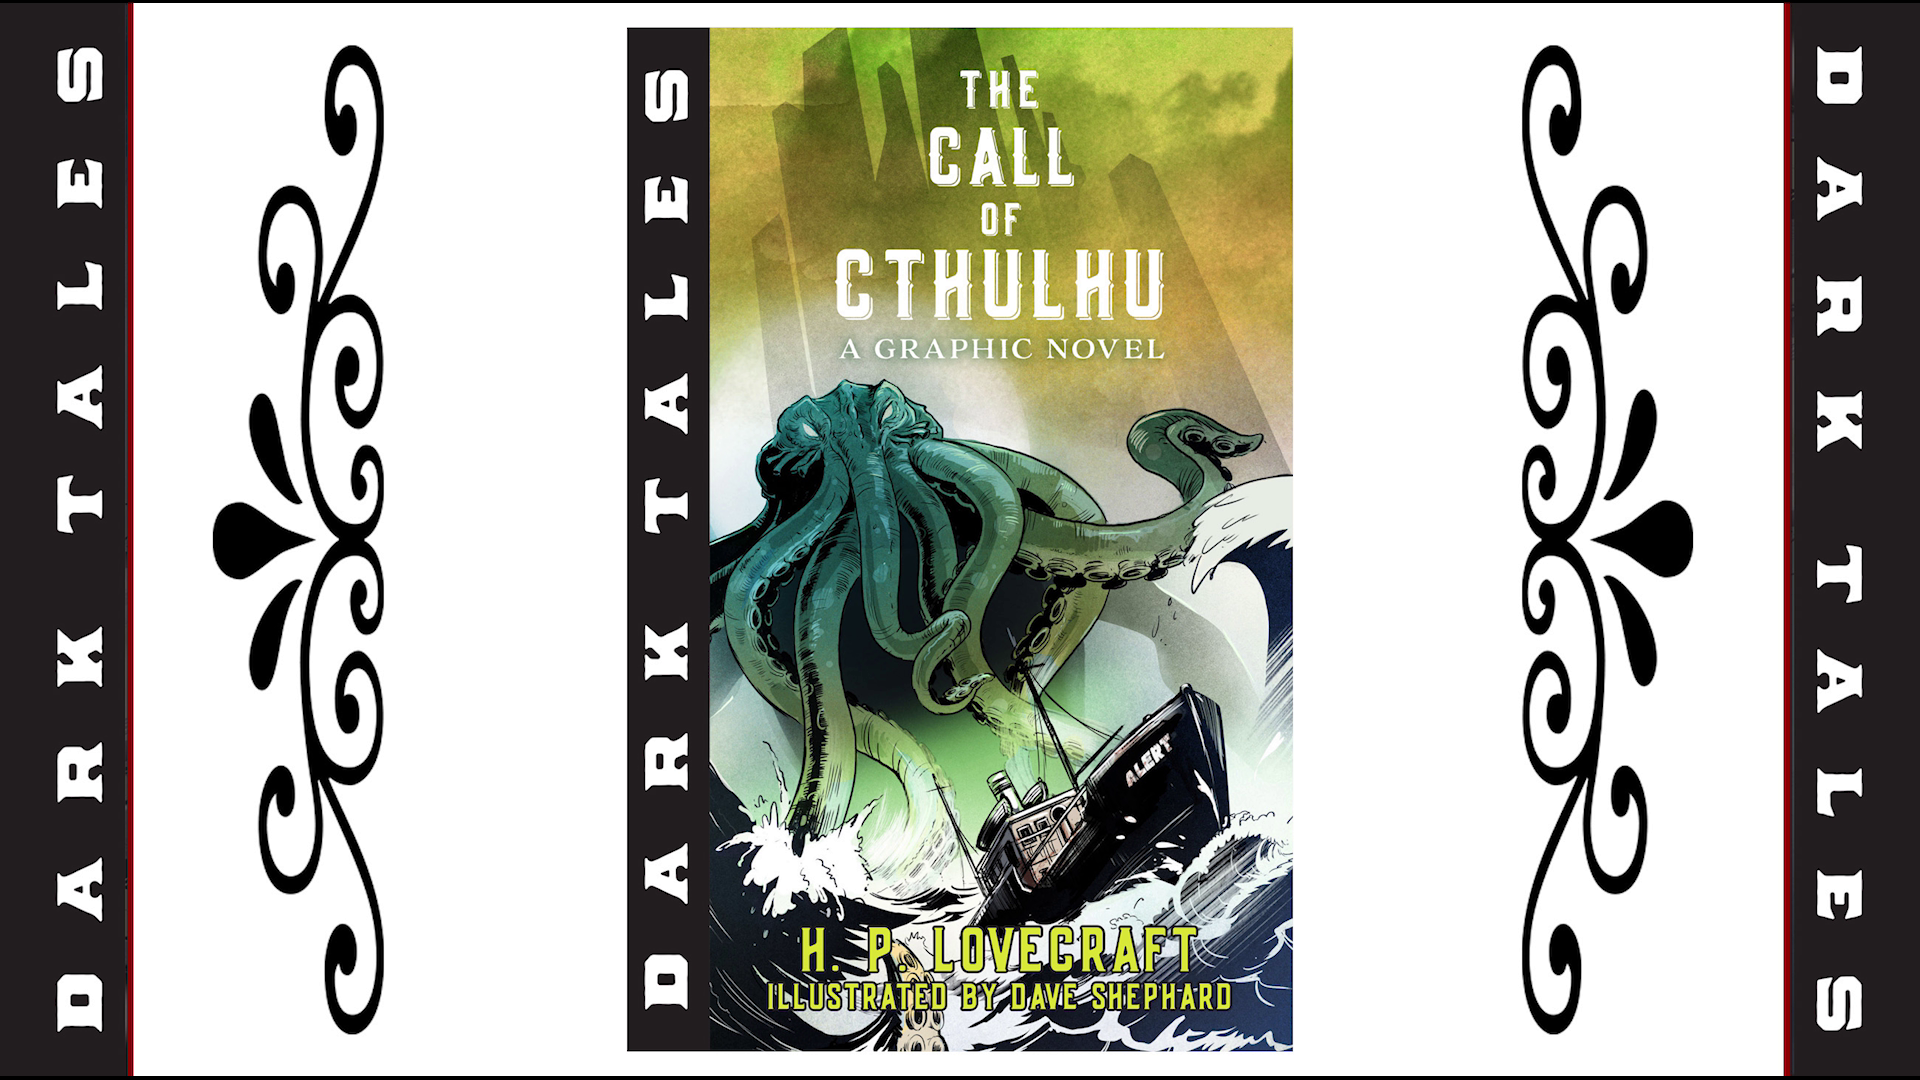 DARK TALES: THE CALL OF THE CTHULHU